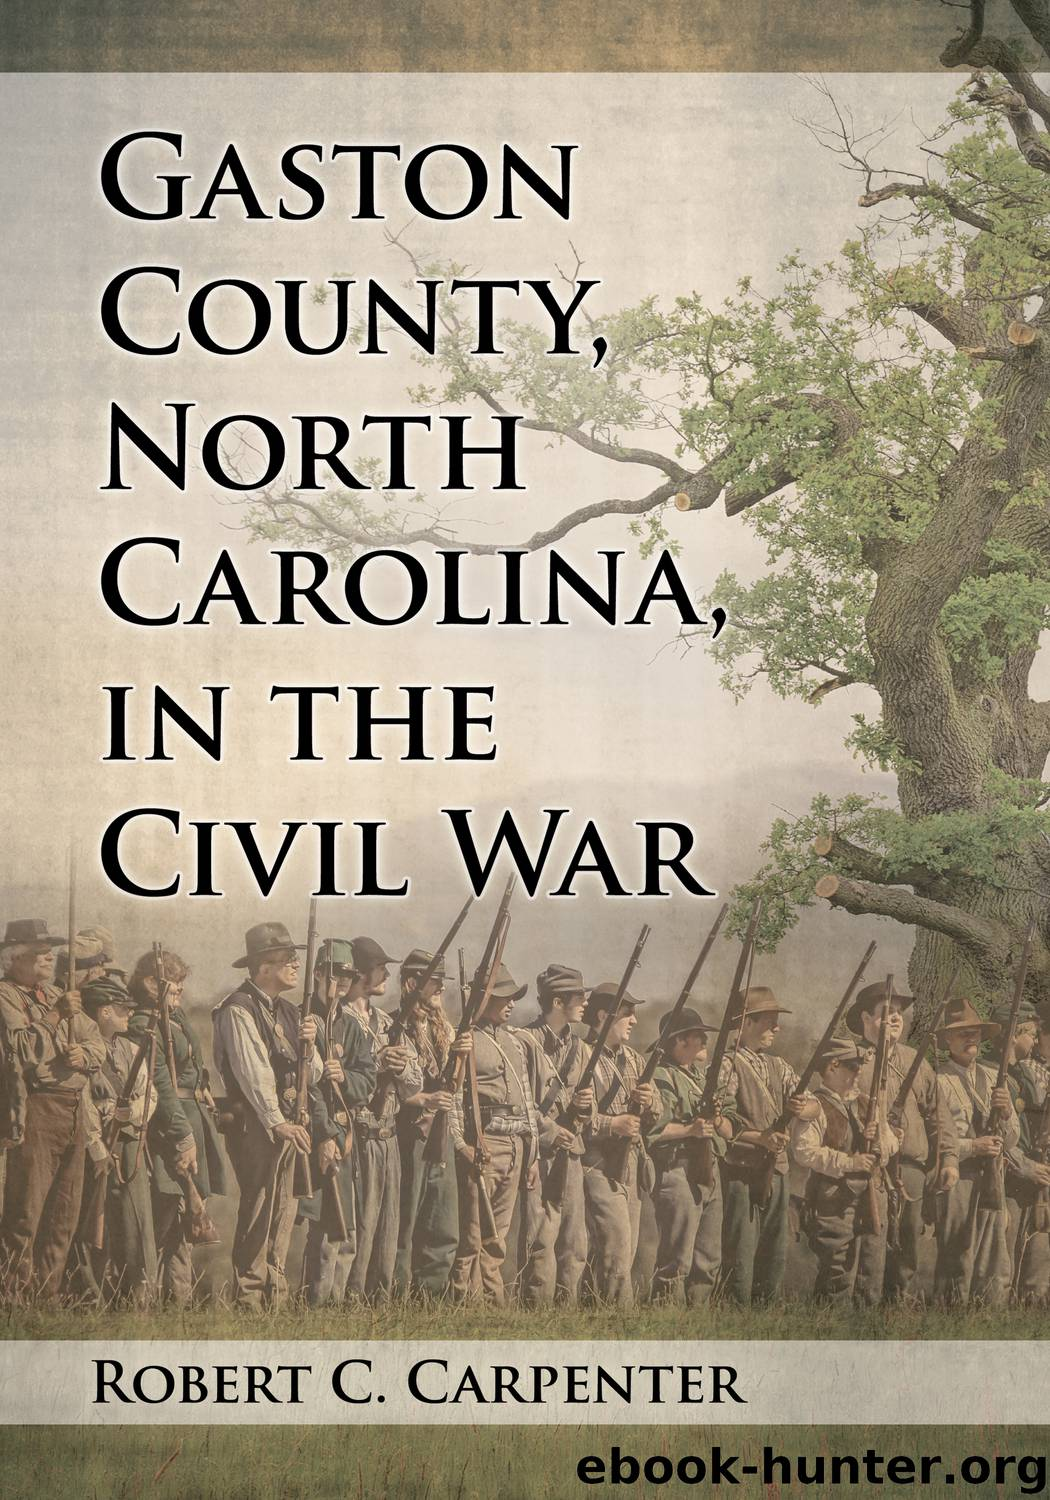 Gaston County, North Carolina, in the Civil War by Robert C. Carpenter